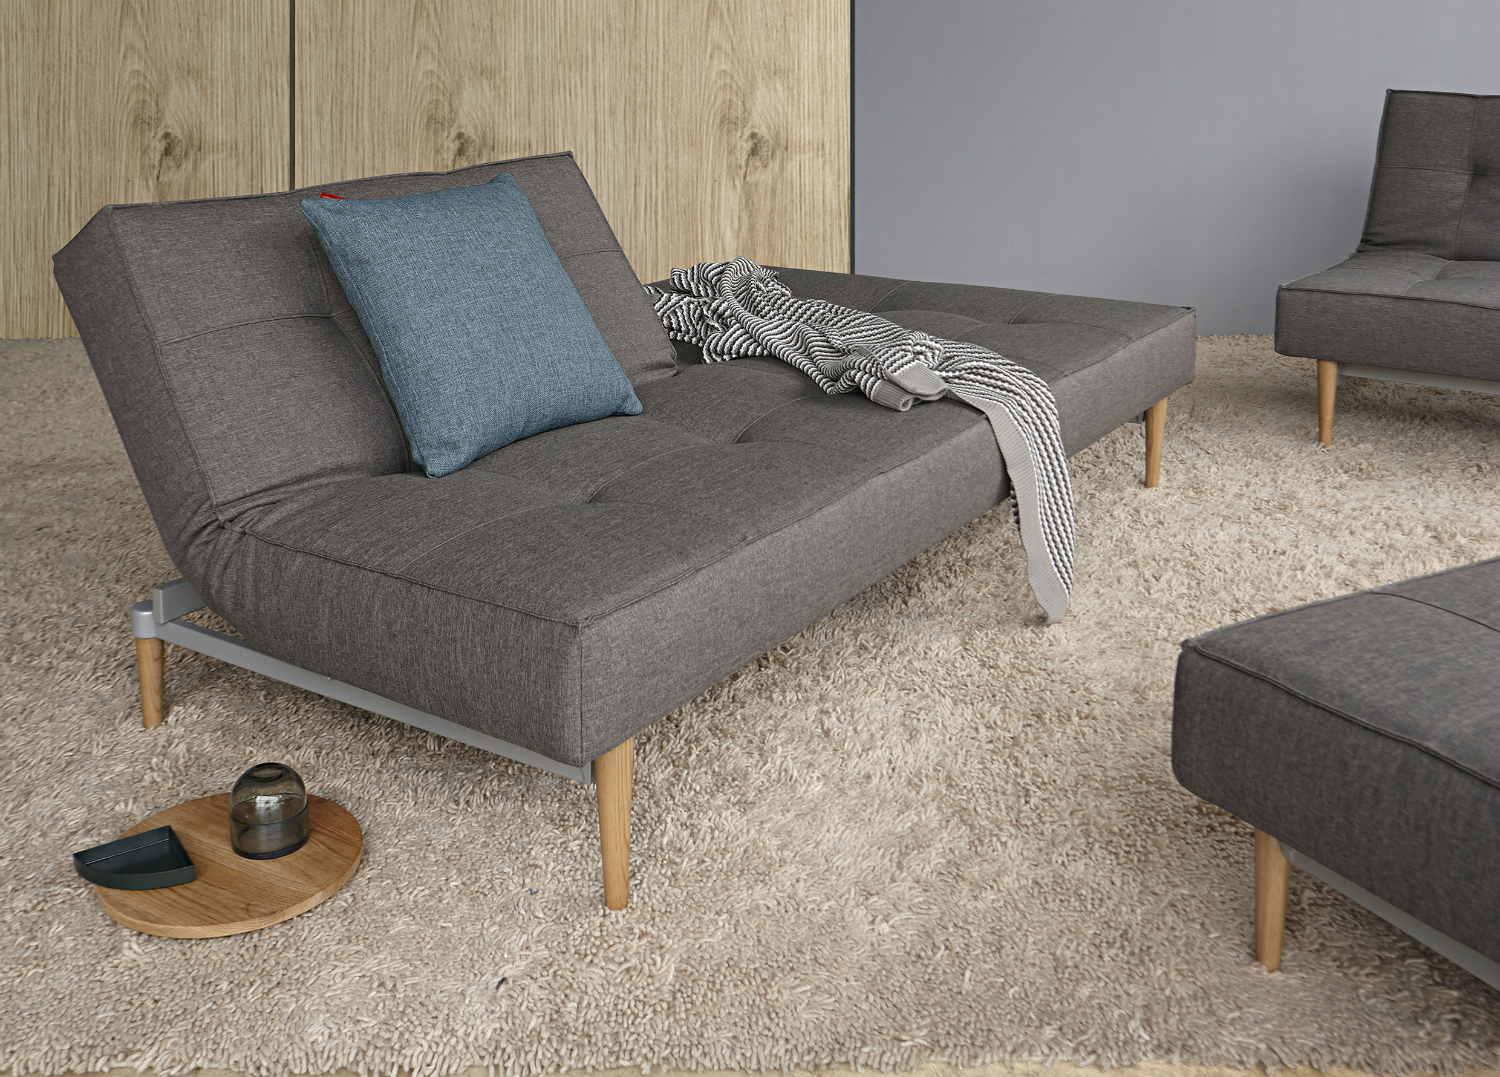 Innovation Living Danish Designed Sofa Beds Melbourne